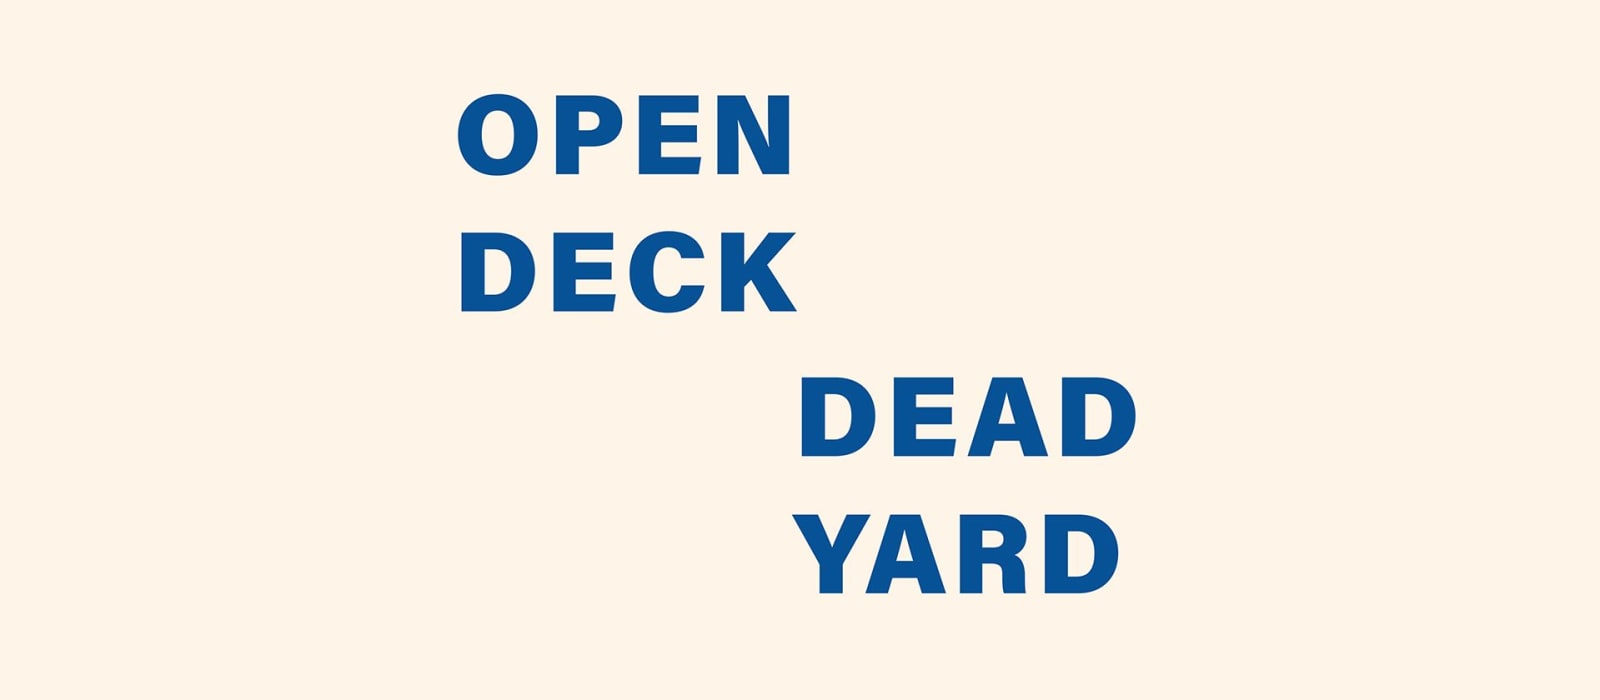 Open Deck Dead Yard